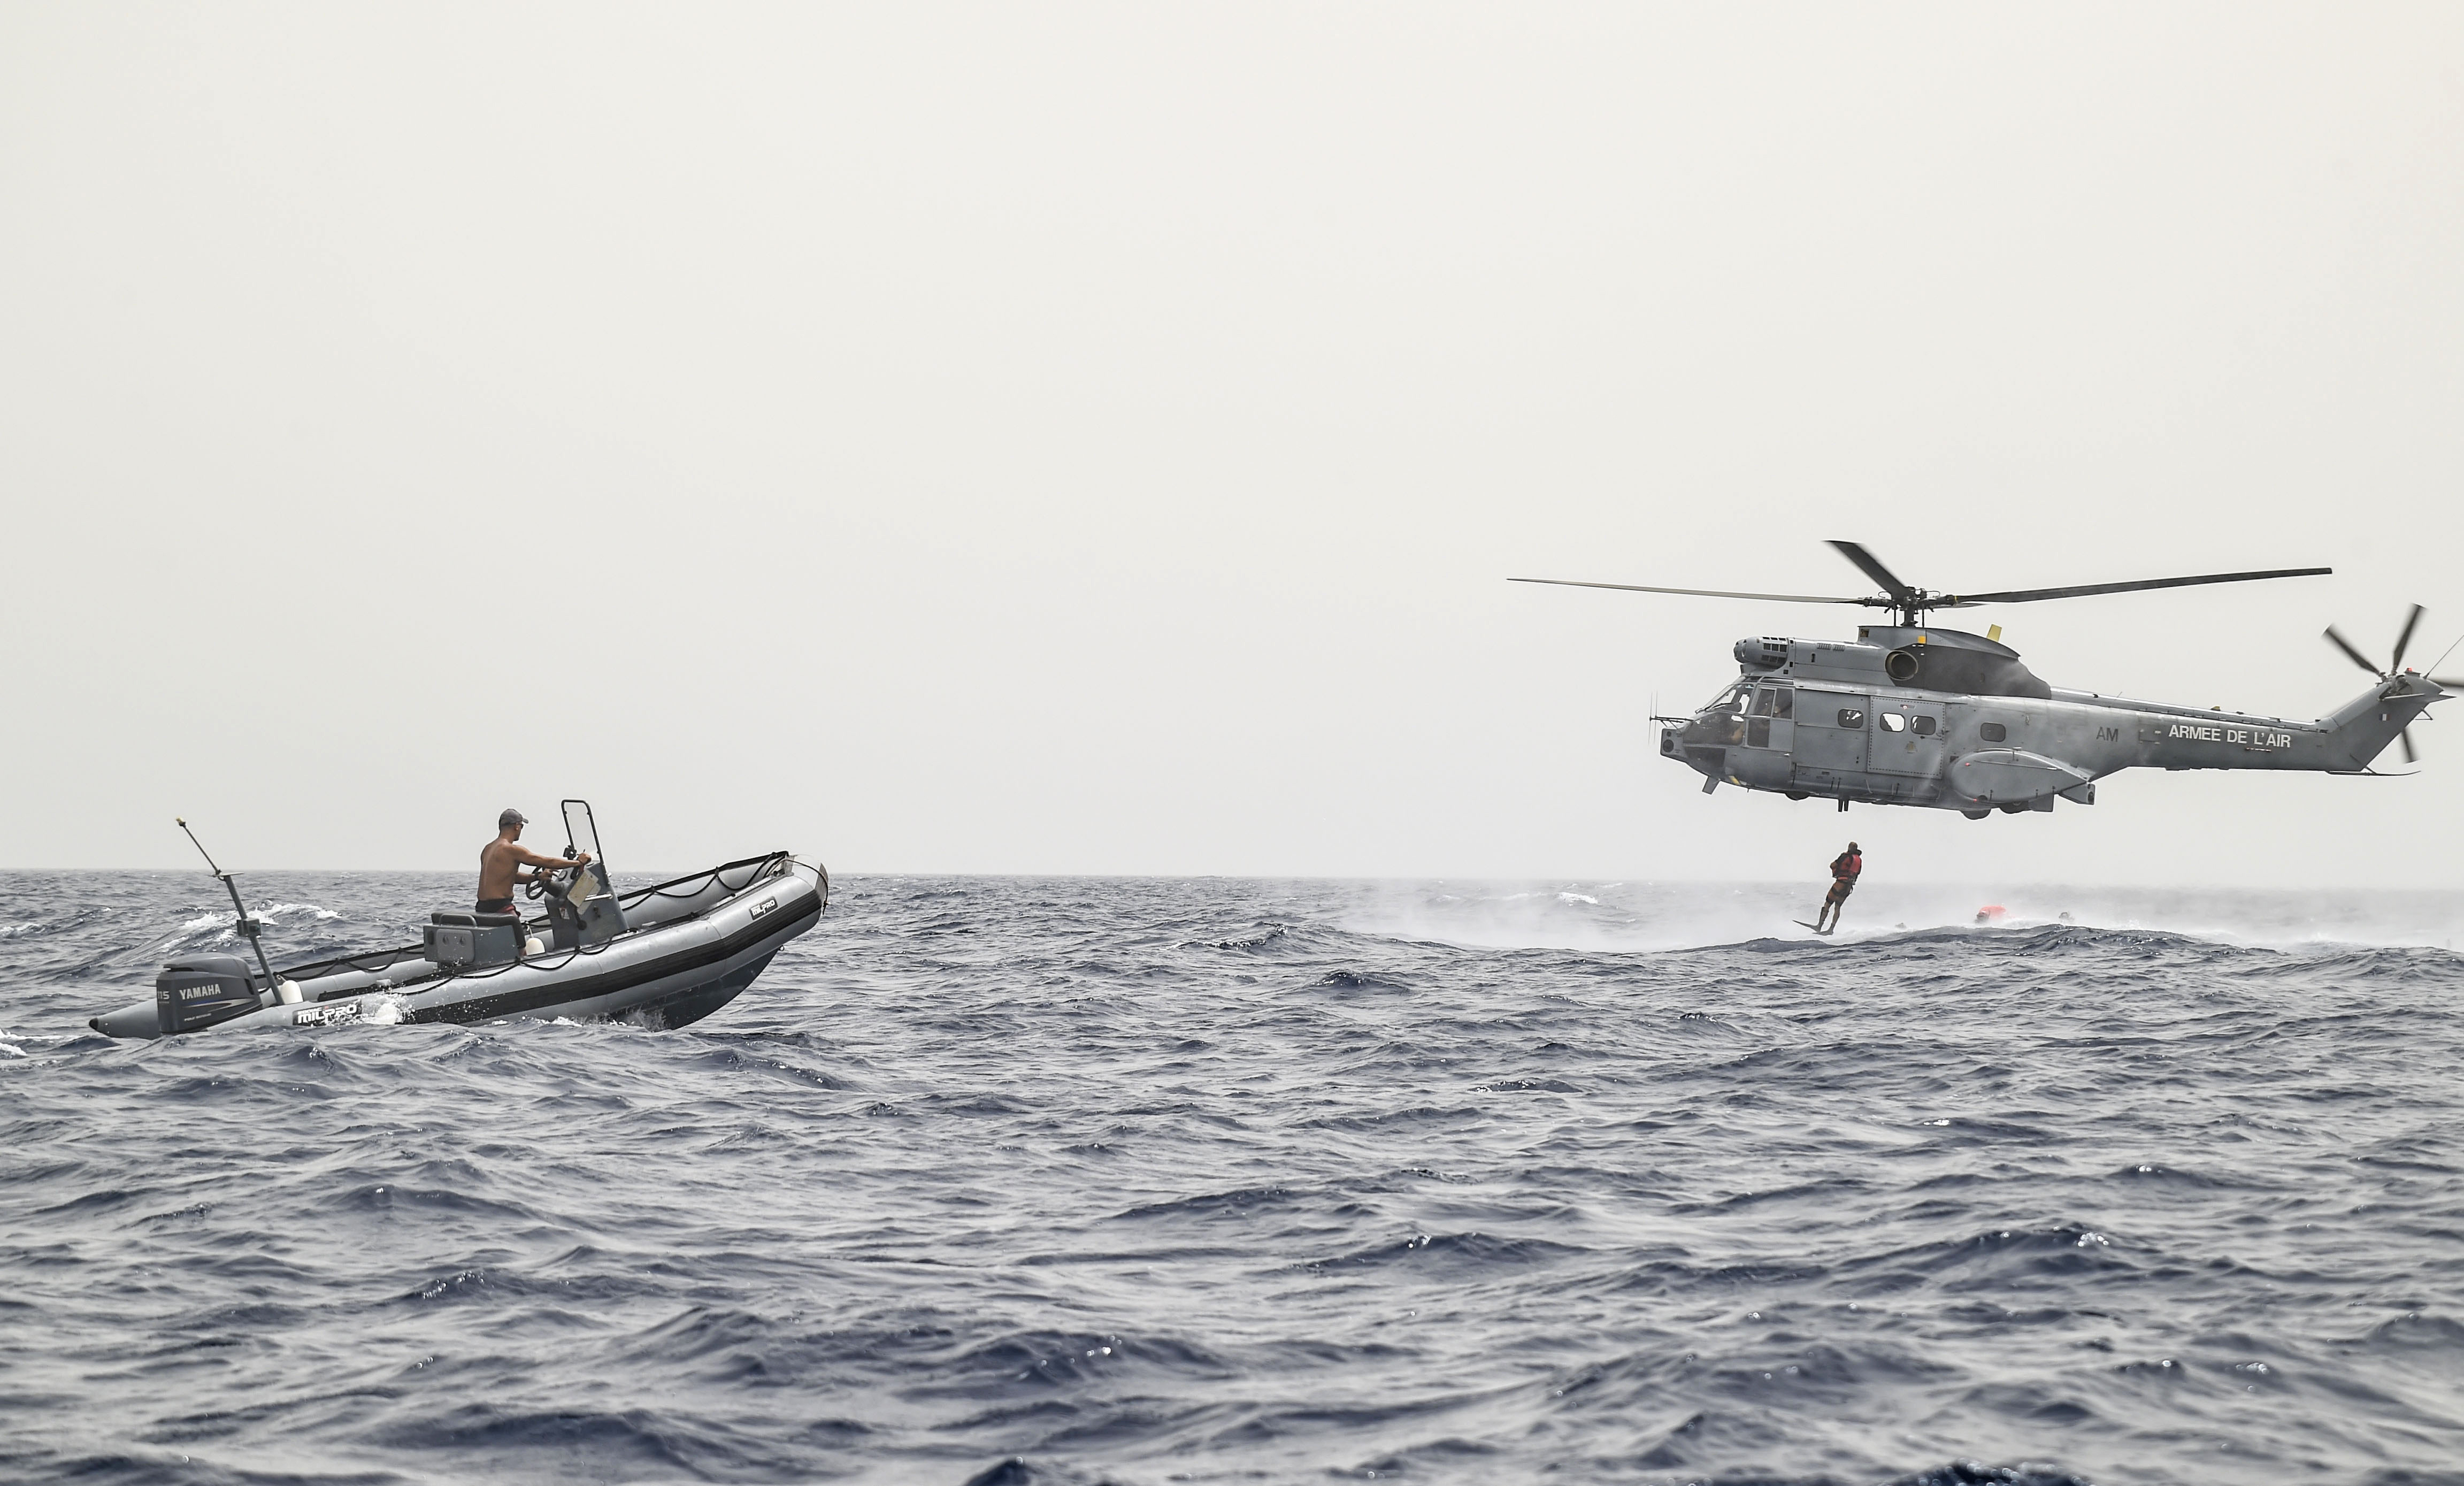 French Air Force rescue personnel assigned to the Transport Squadron ET 88 participate in a bilateral water operations exercise with pararescuemen from the 82nd Expeditionary Rescue Squadron, assigned to Combined Joint Task Force-Horn of Africa, in the Gulf of Tadjoura, July 3, 2017. The results of the exercise will aid in the development of standard operating procedures between CJTF-HOA and the French Forces stationed in Djibouti for the U.S. and France's mutual support of maritime  rescue capabilities within the Horn of Africa region. (U.S. Air Force photo by Staff Sgt. Eboni Prince)